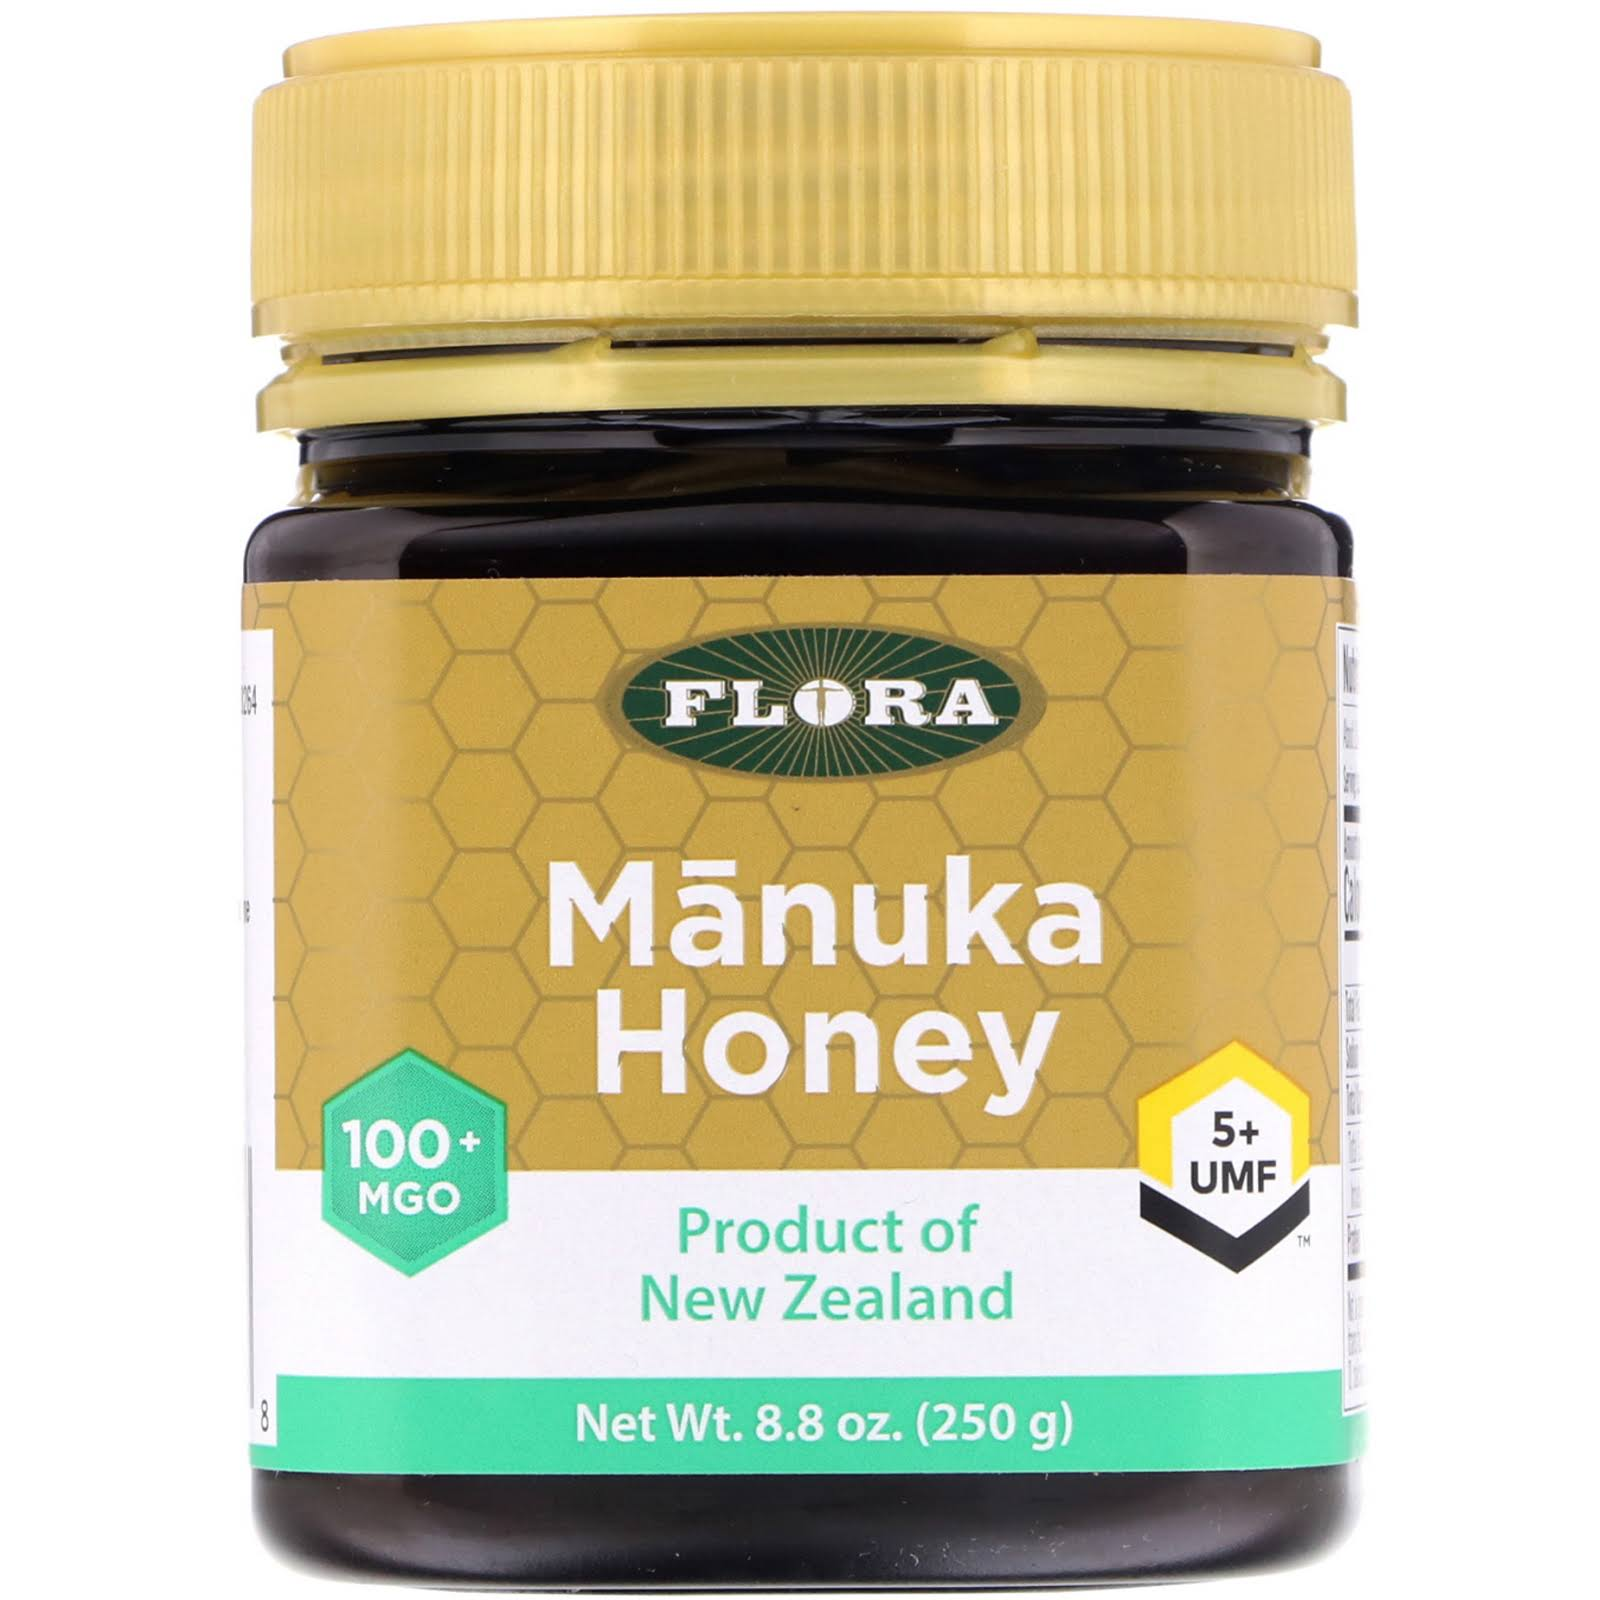 Flora Manuka Honey 100+ MGO 8.8 oz (250 g)